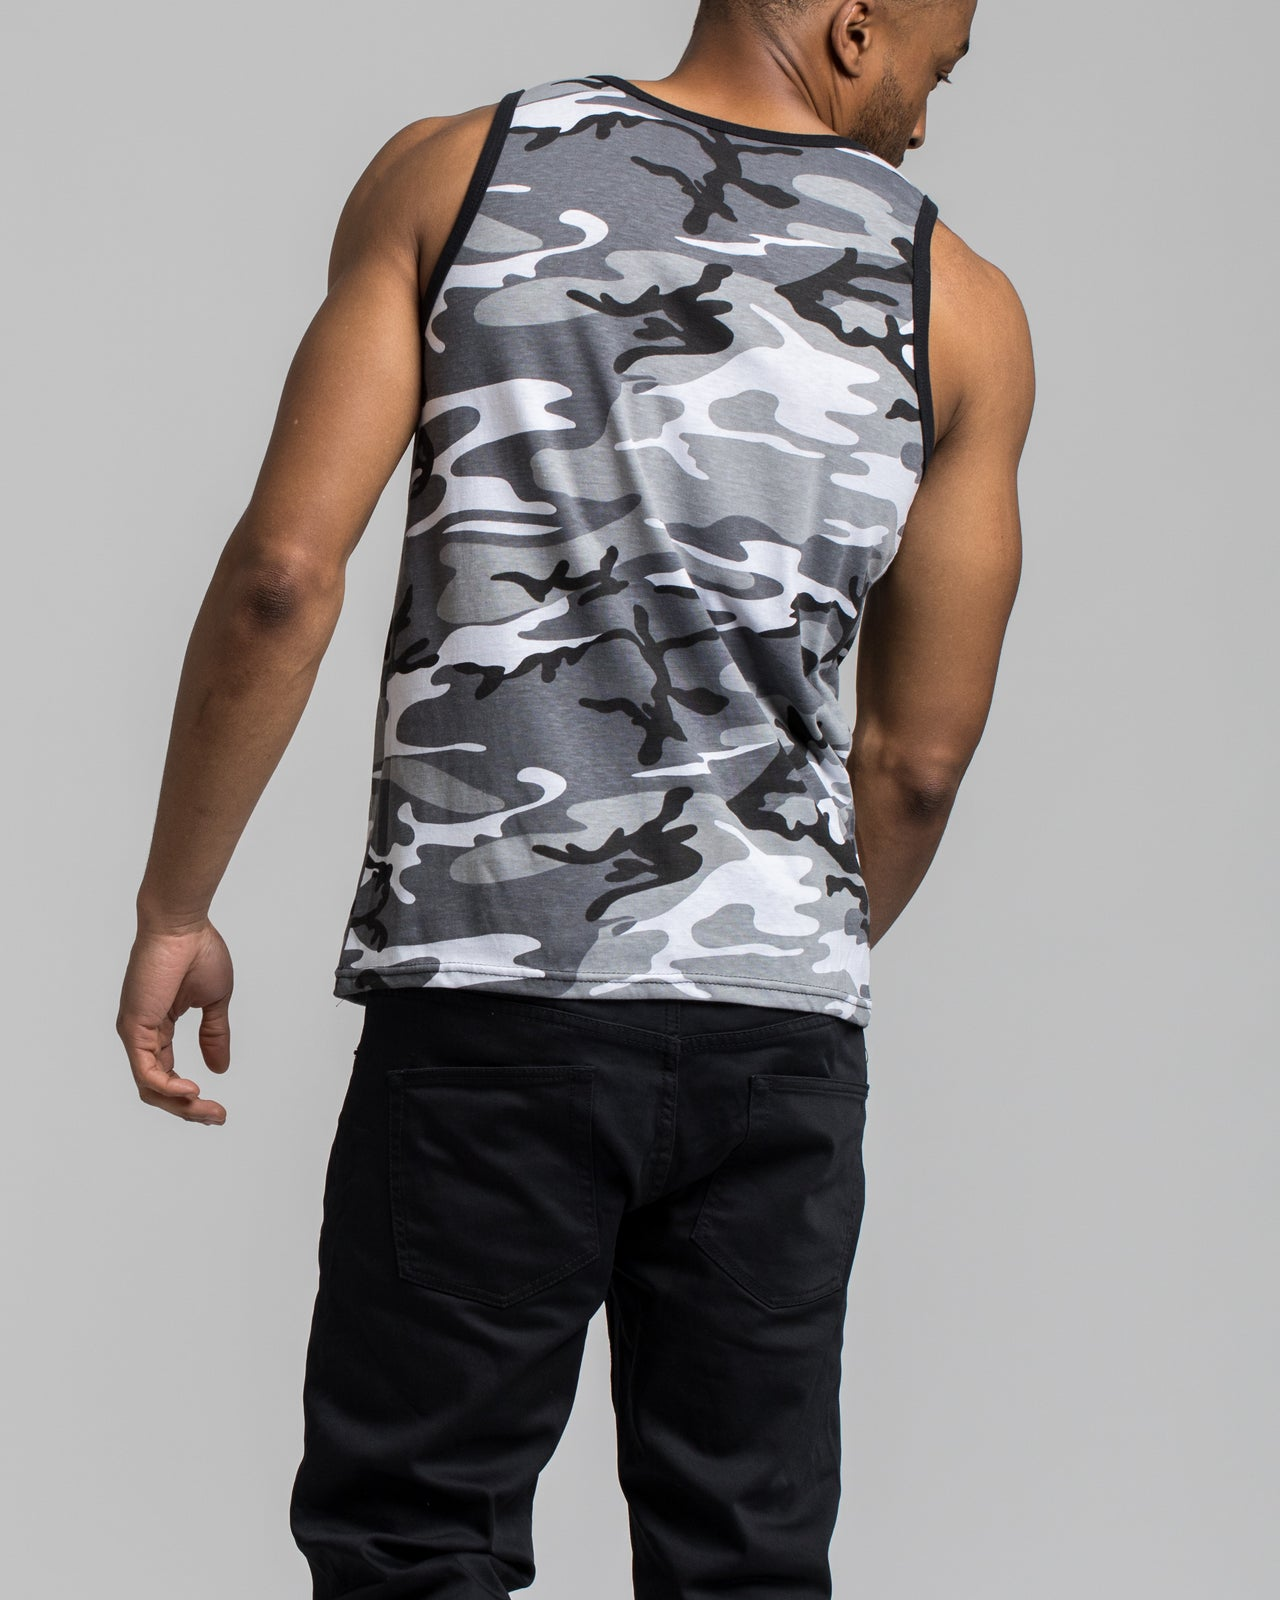 84283f921a7544 Camo Tank Top - Color  City Camo